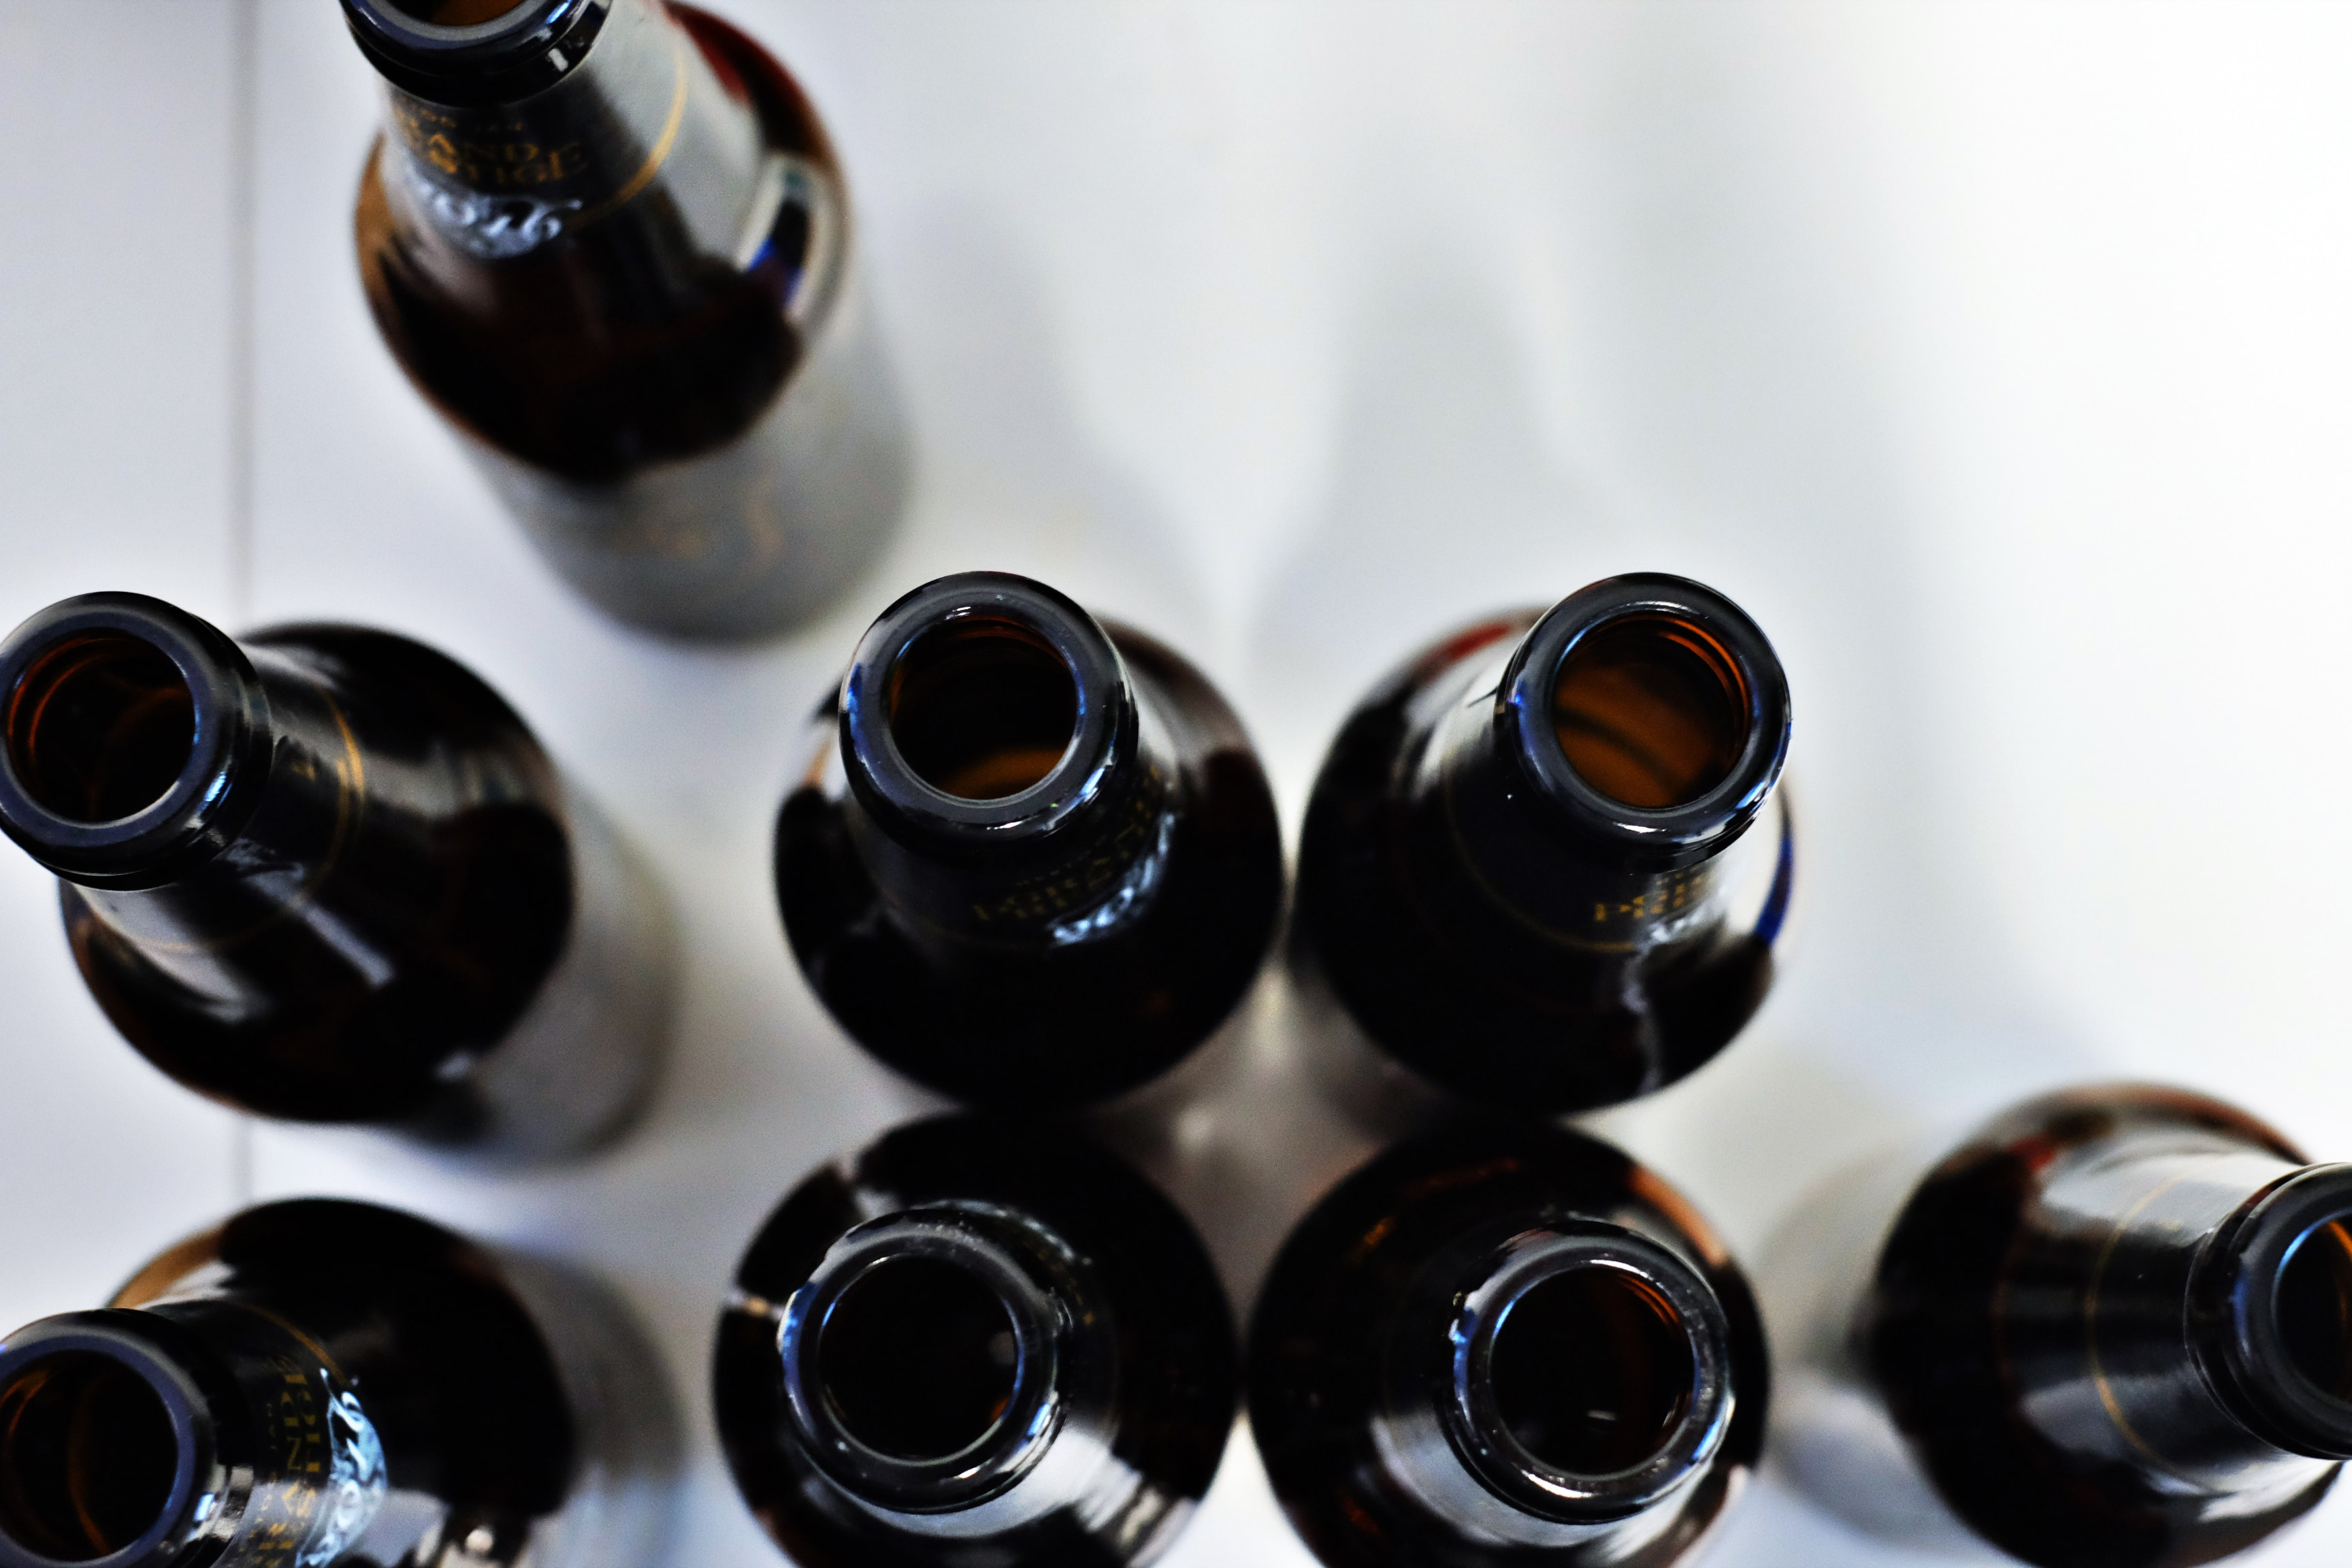 The macro view of the top of open and empty beer bottles